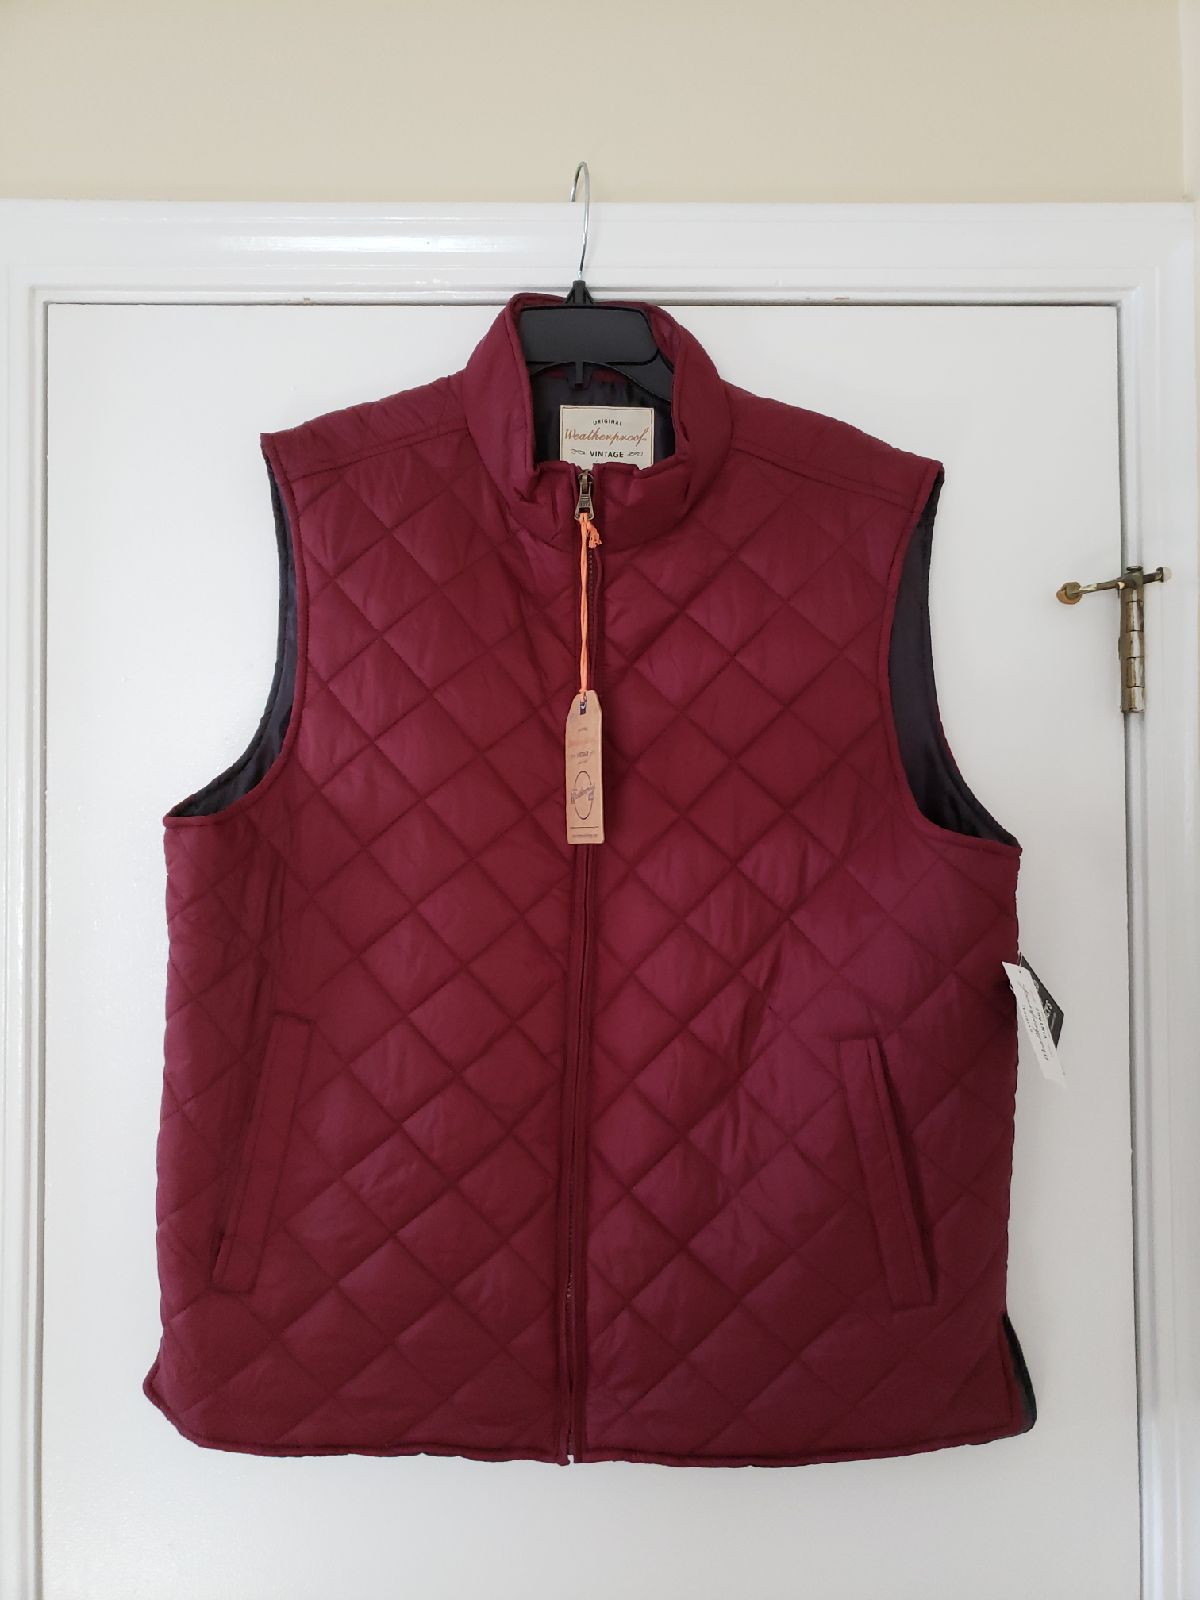 NWT Men's Outerwear Vest